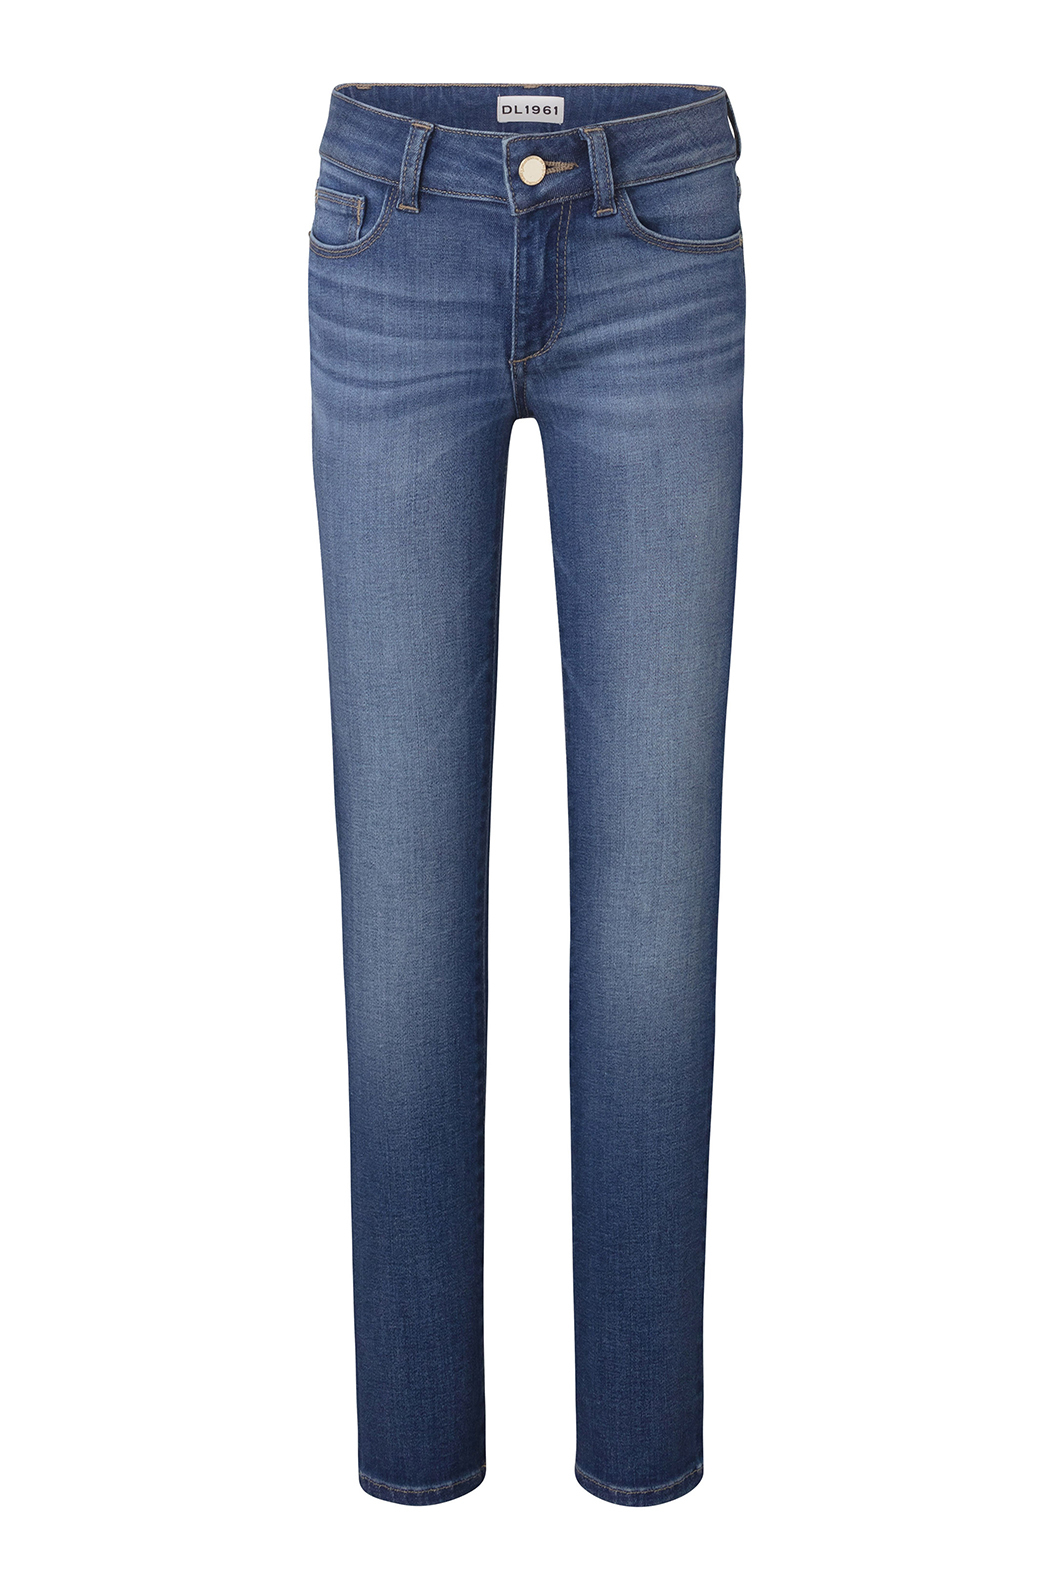 DL1961 Chloe Skinny Child Jeans Parula - Main Image